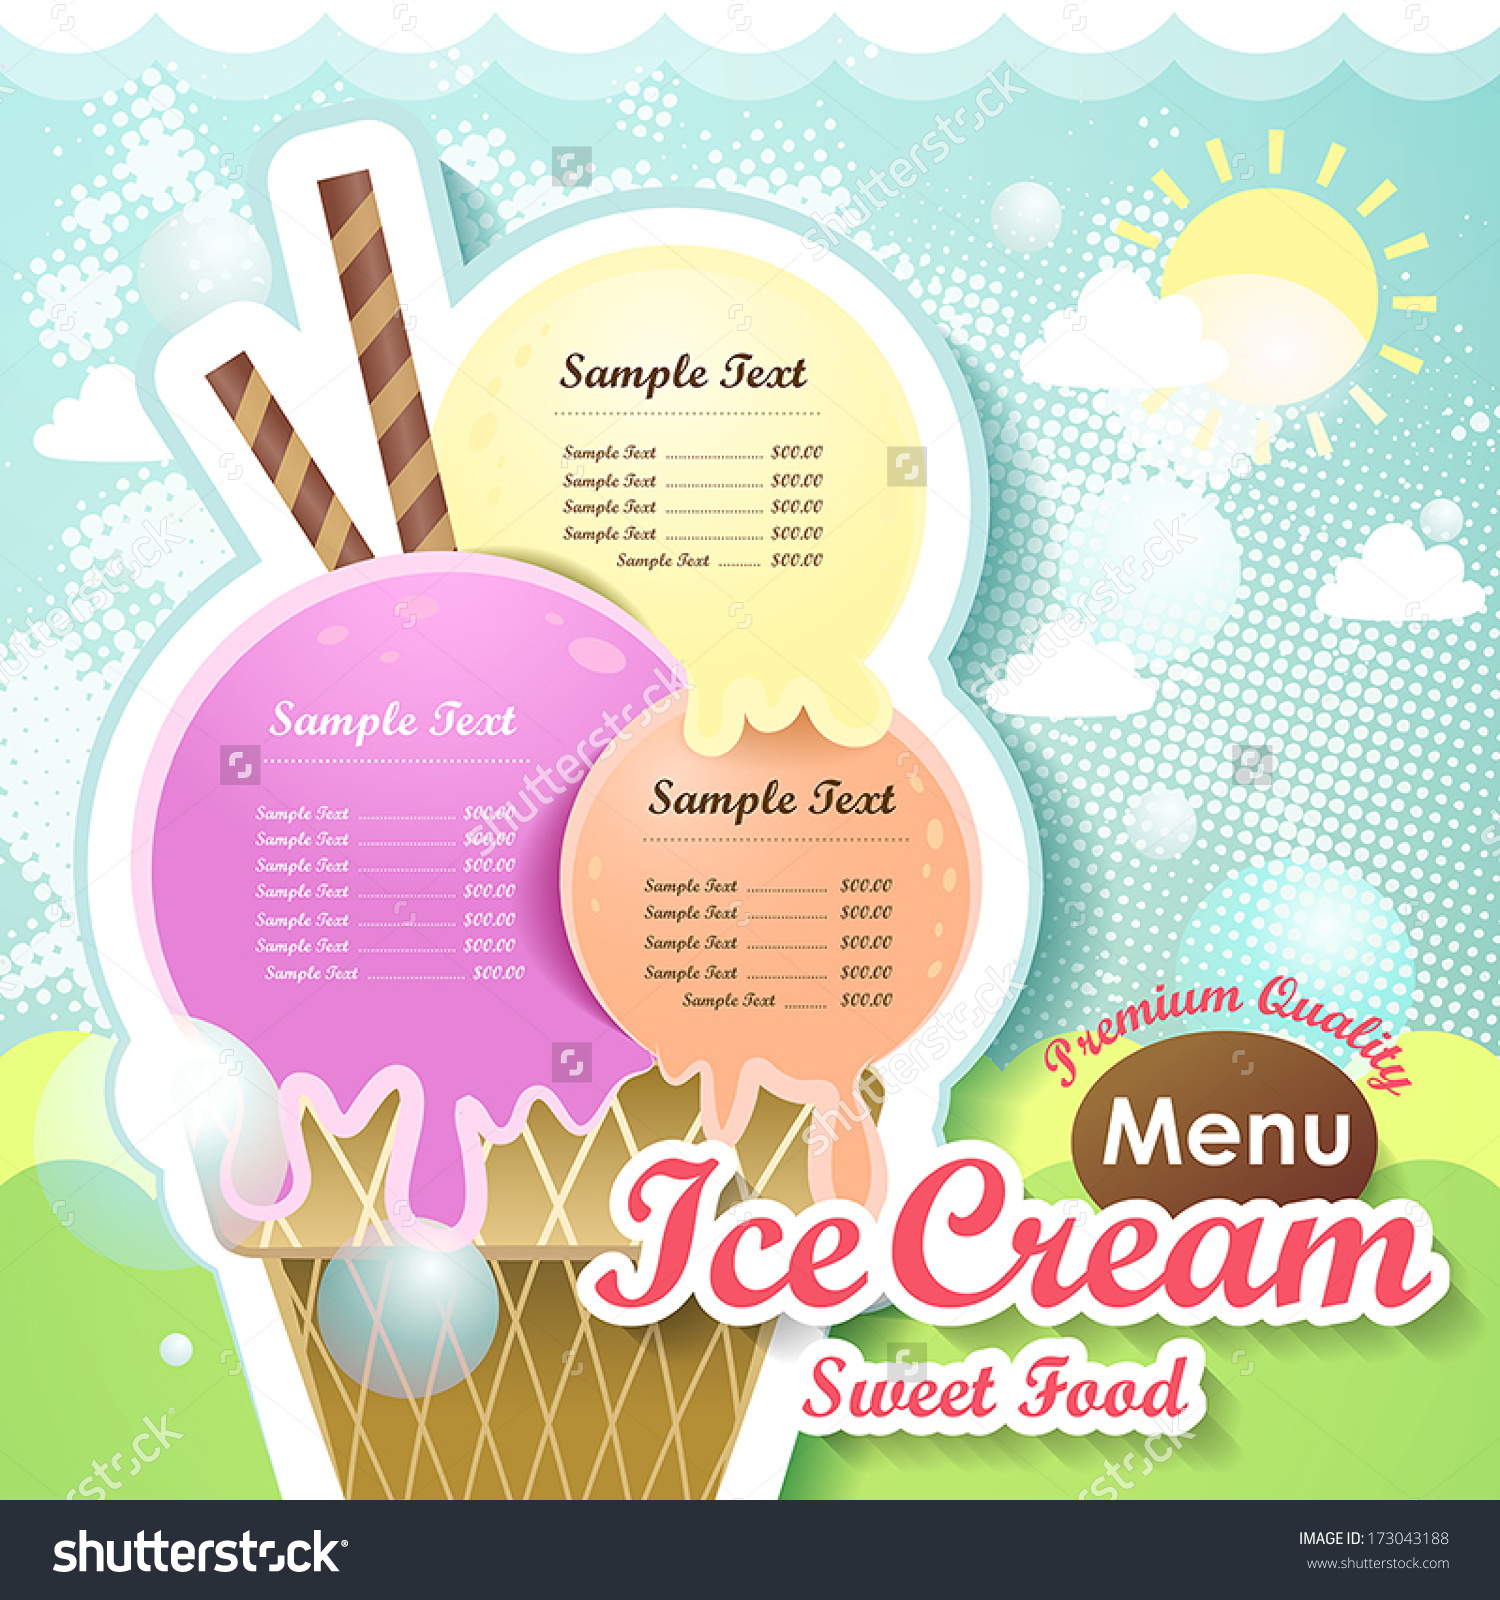 Restaurant Ice Cream Menu Cover Vector Stock Vector 173043188.